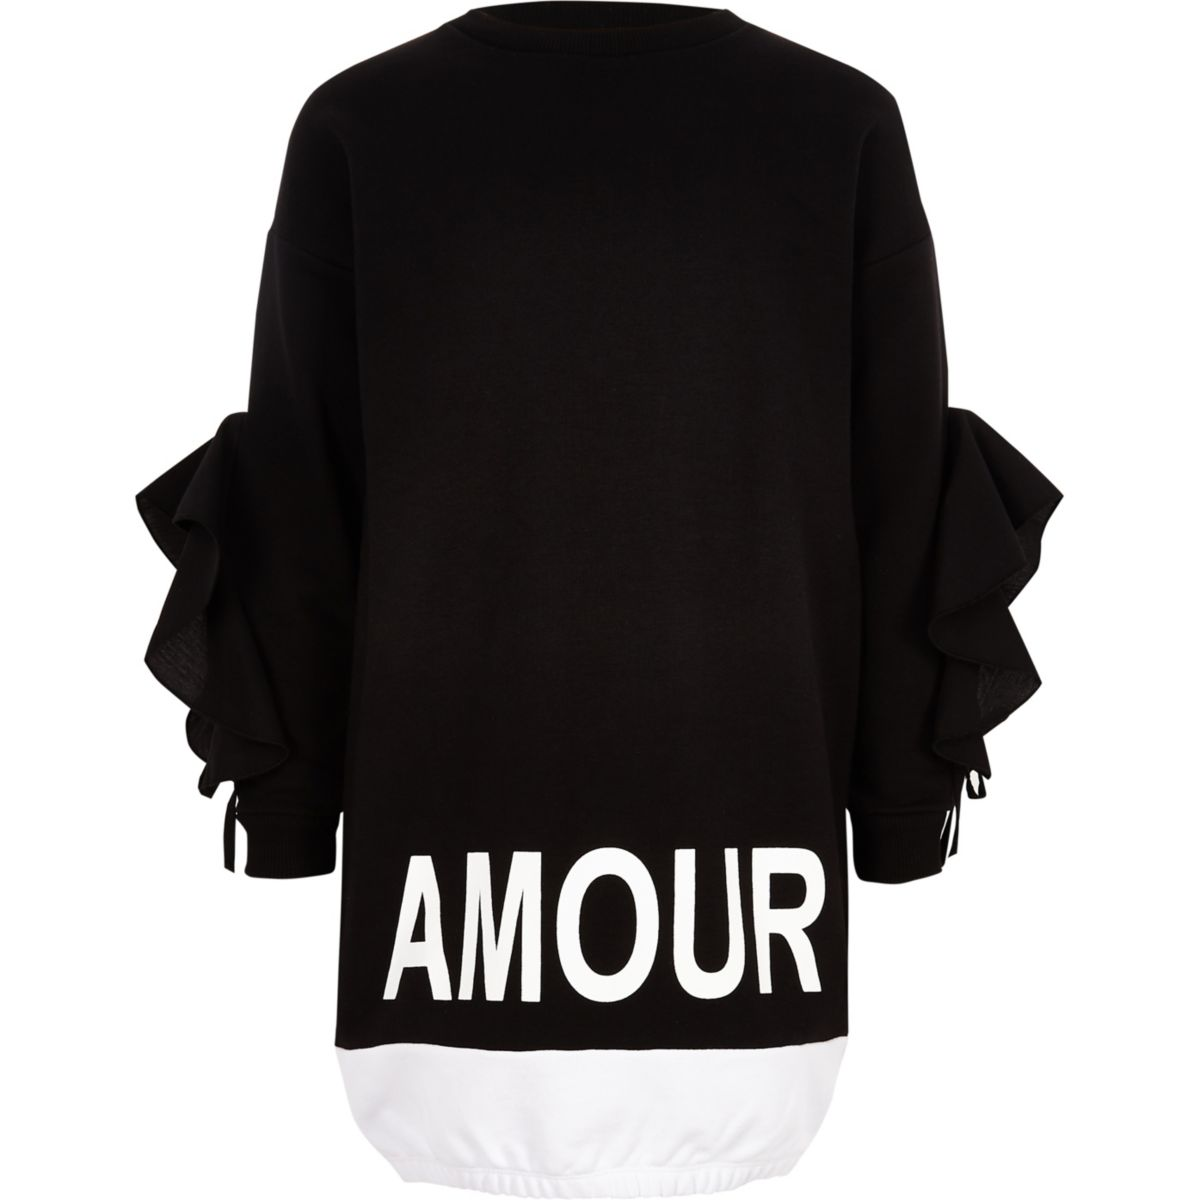 Girls black 'amour' print sweatshirt dress